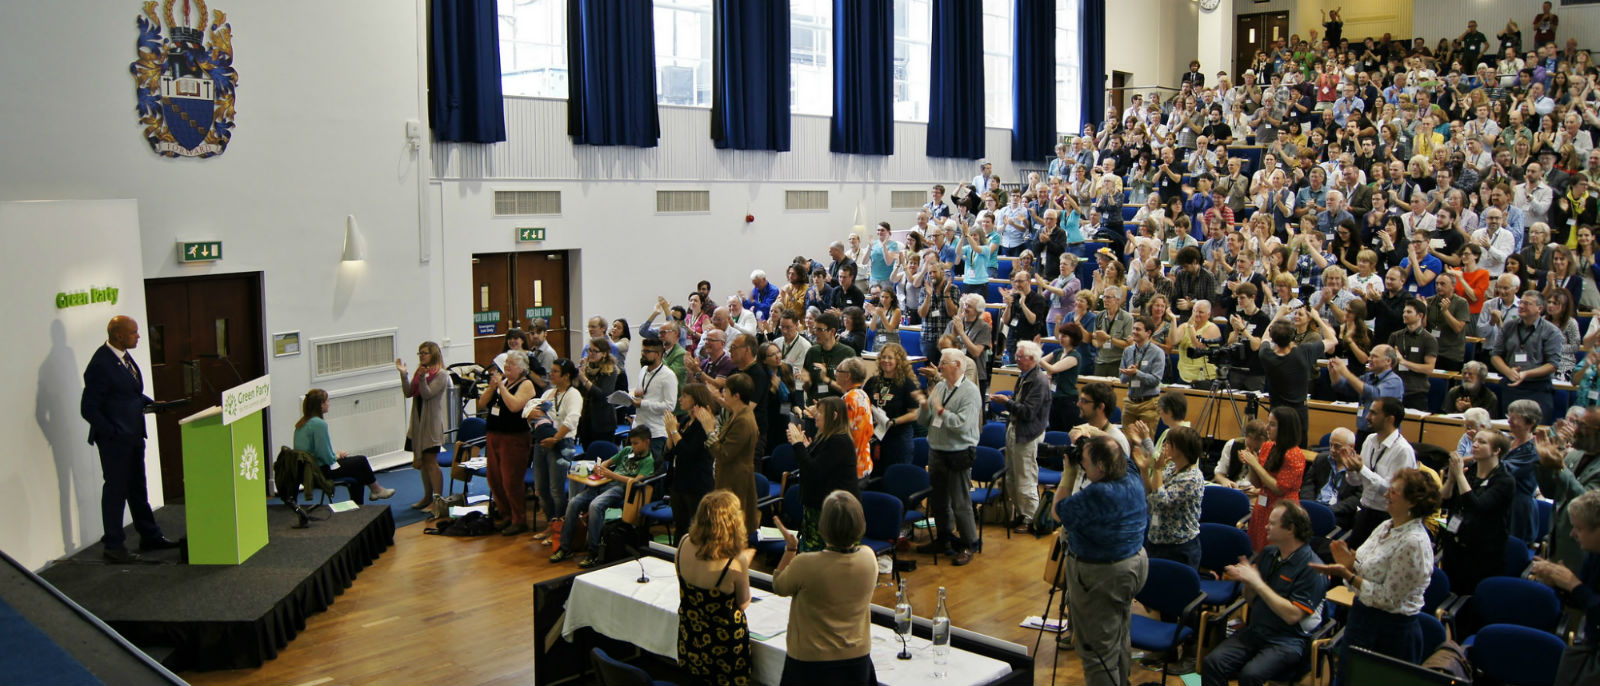 Green Party conference empowered by The Politics of Imagination. Photo: Vicky Duckworth (click to enlarge)